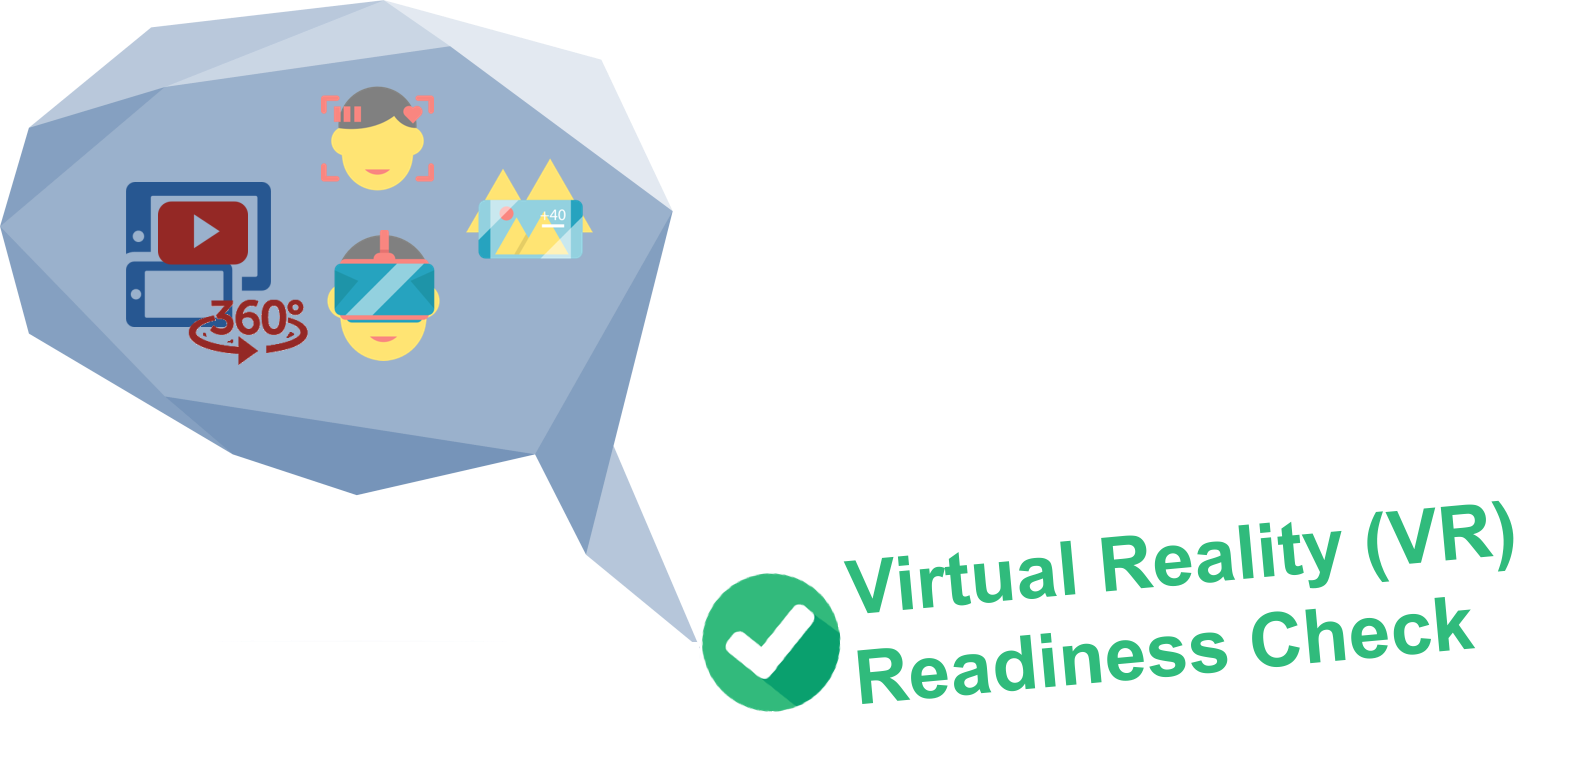 http://www.torstenfell.com/academy/wp-content/uploads/2017/04/readiness_check_vr.png